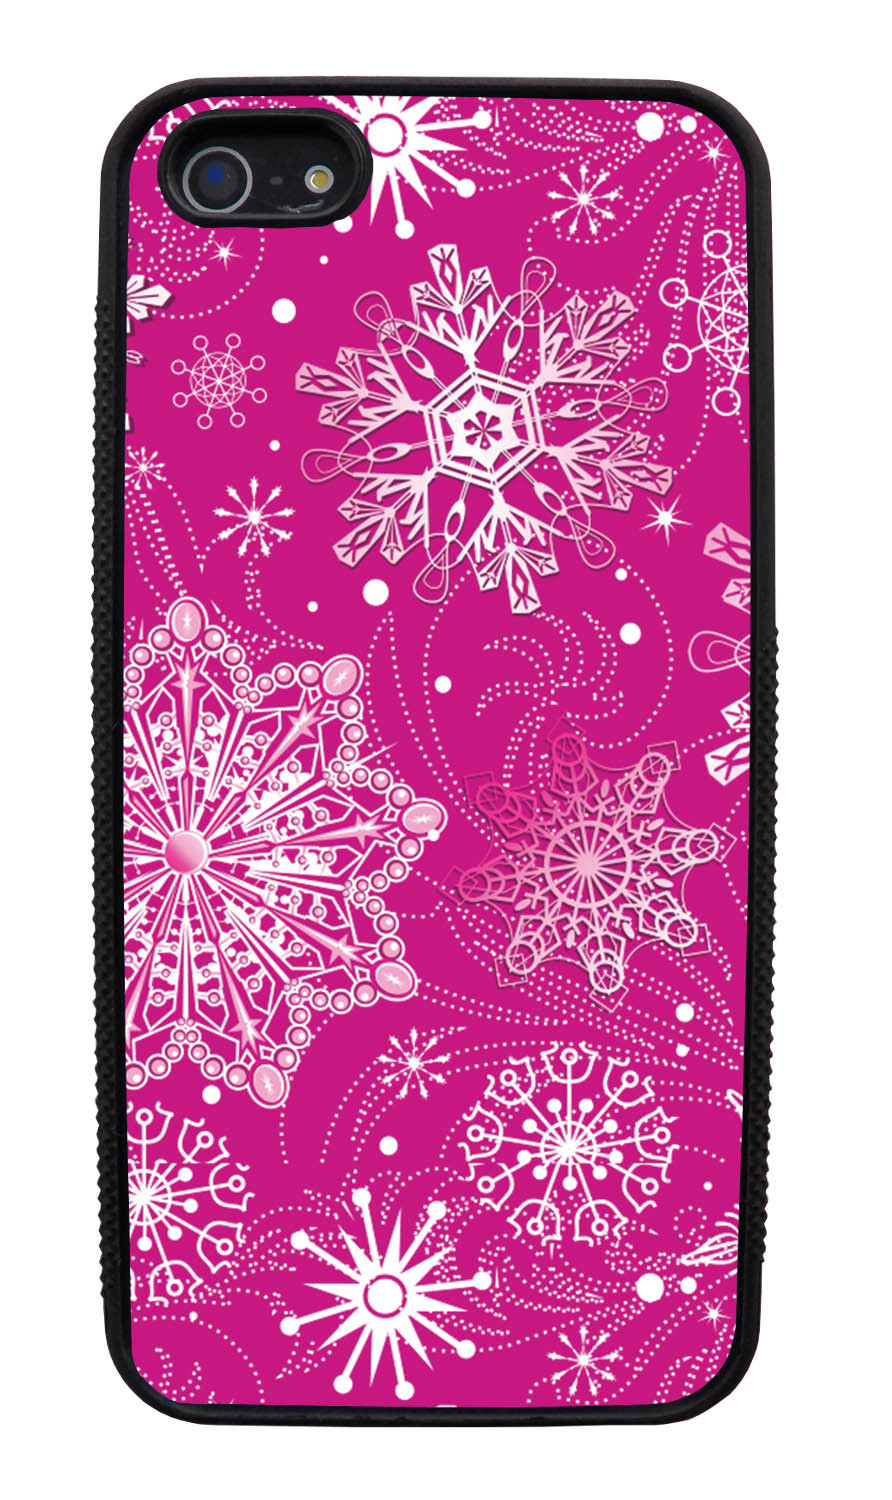 Apple iPhone 5 / 5S Pink Case - White Snowflakes on Hot Pink - Fall And Winter - Black Slim Rubber Case